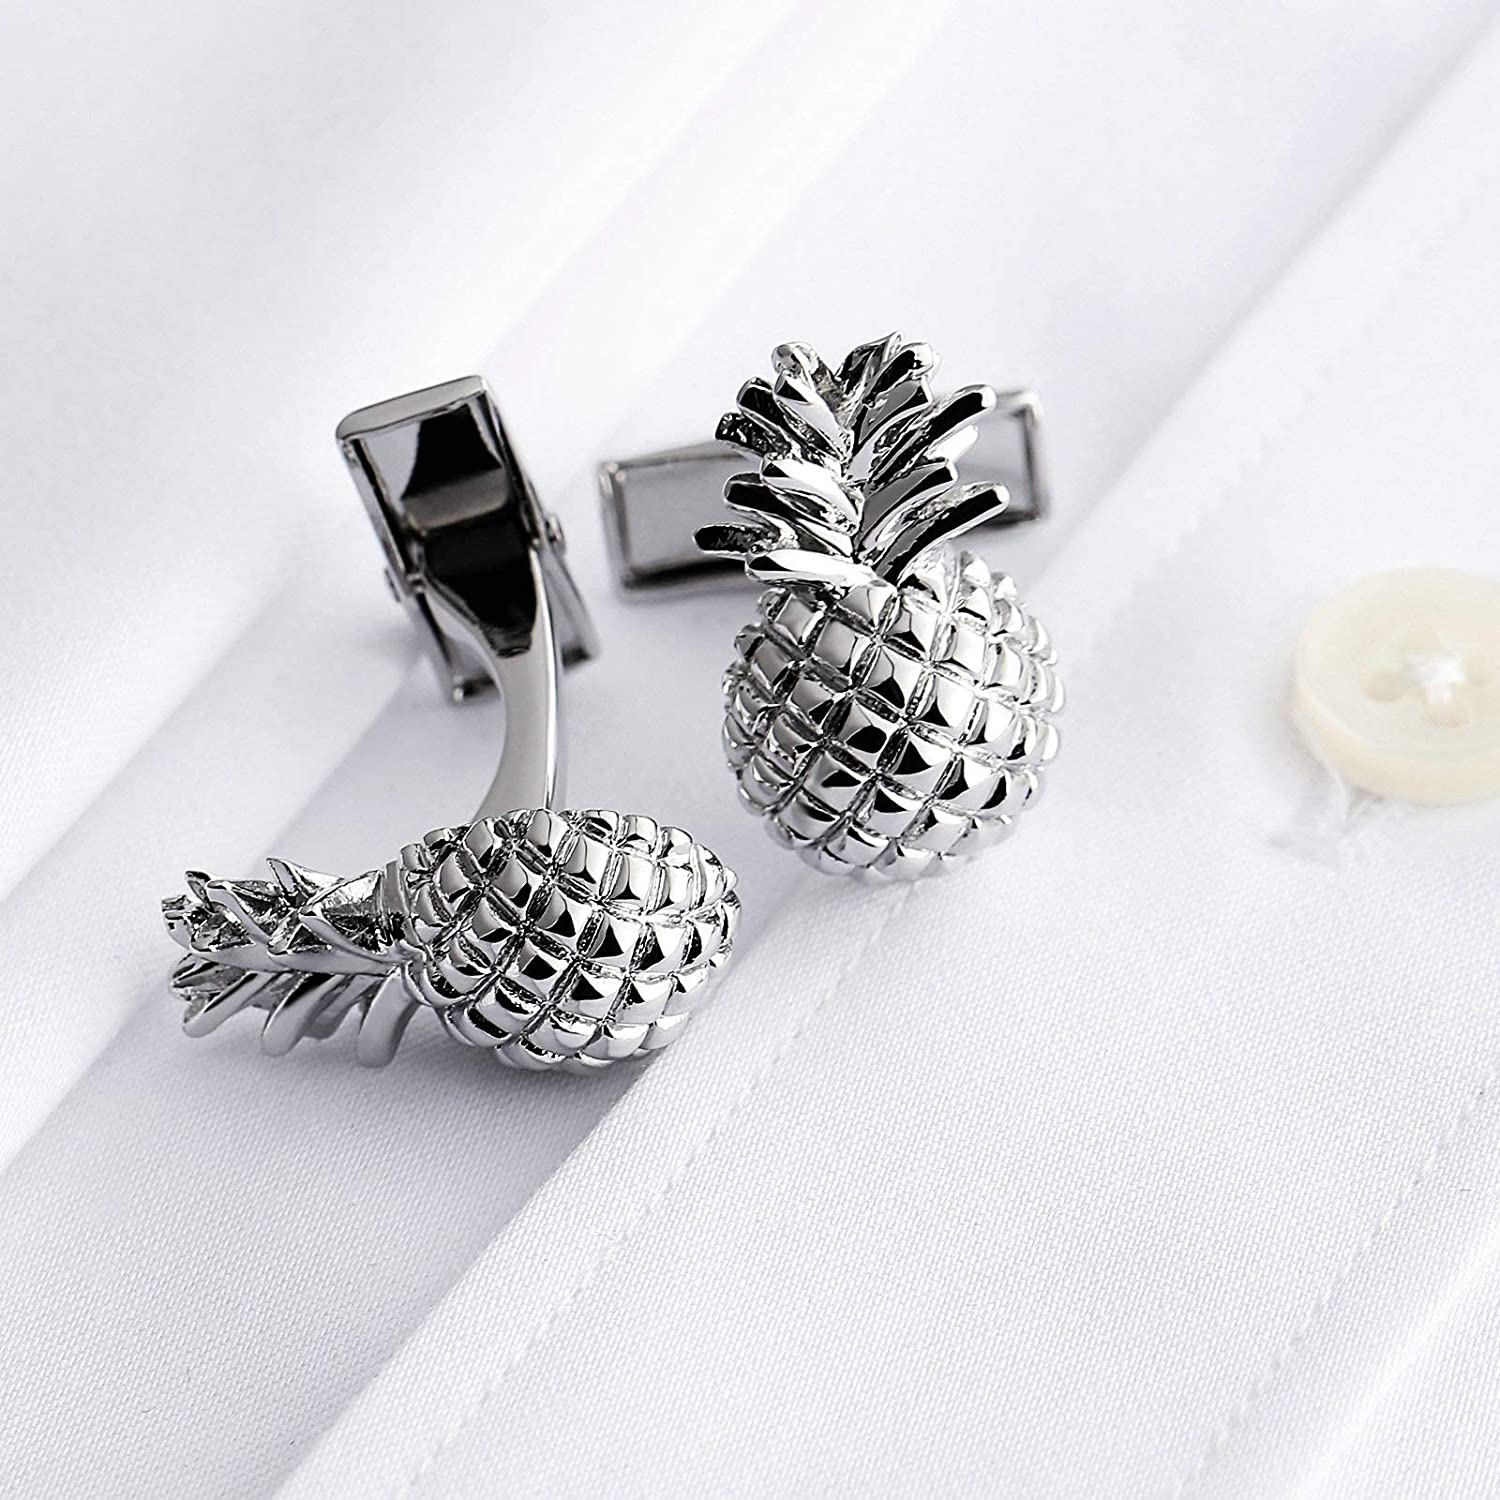 B07PKLRFQ5 Aooaz Cufflink for Men Stainless Steel Cufflink Pineapple Silver Cufflinks Formal Business Wedding Shirts 71RlKqe0jaL